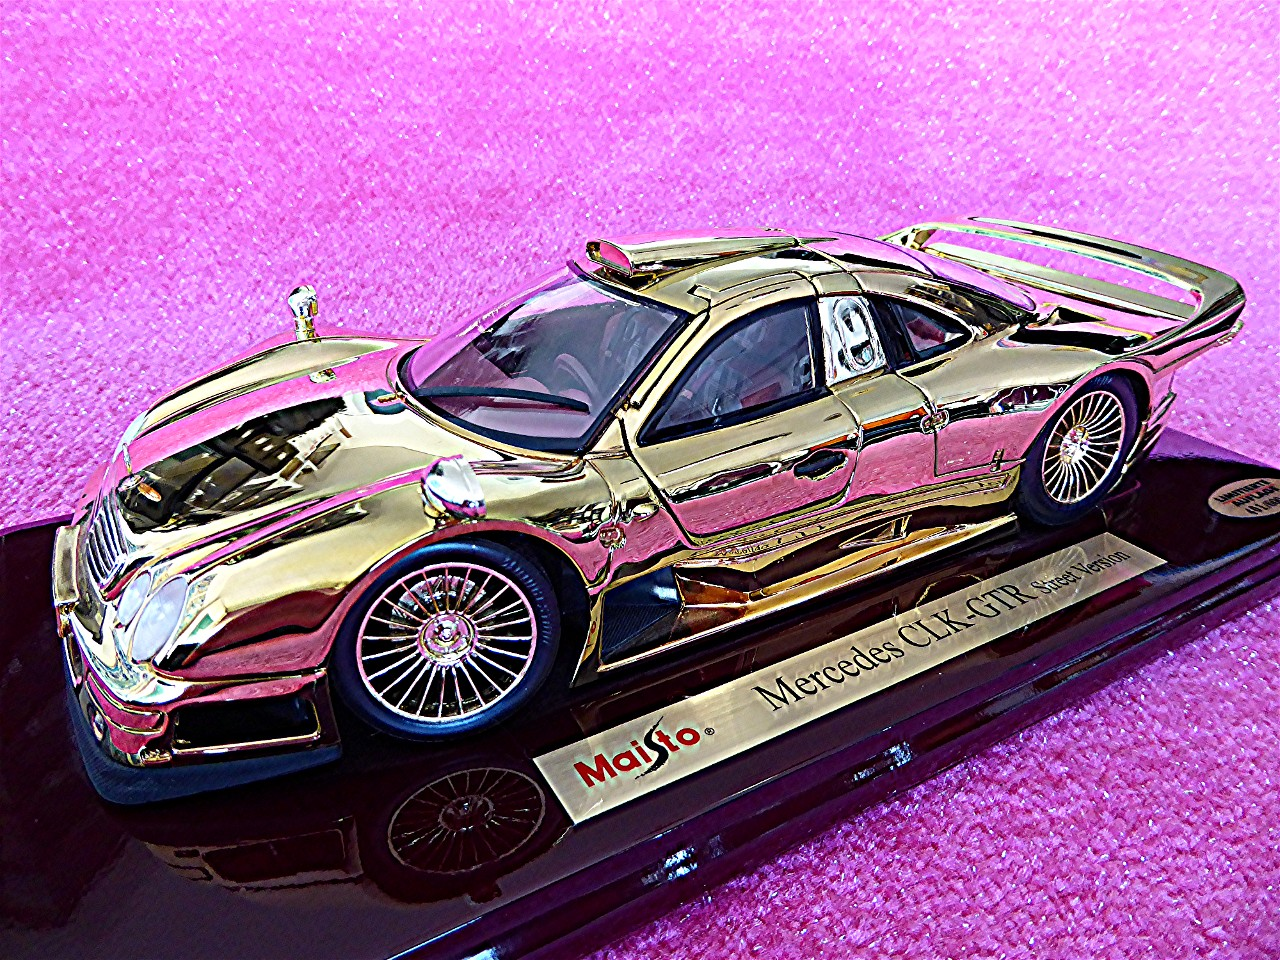 Mercedes CLK GTR gold 1997